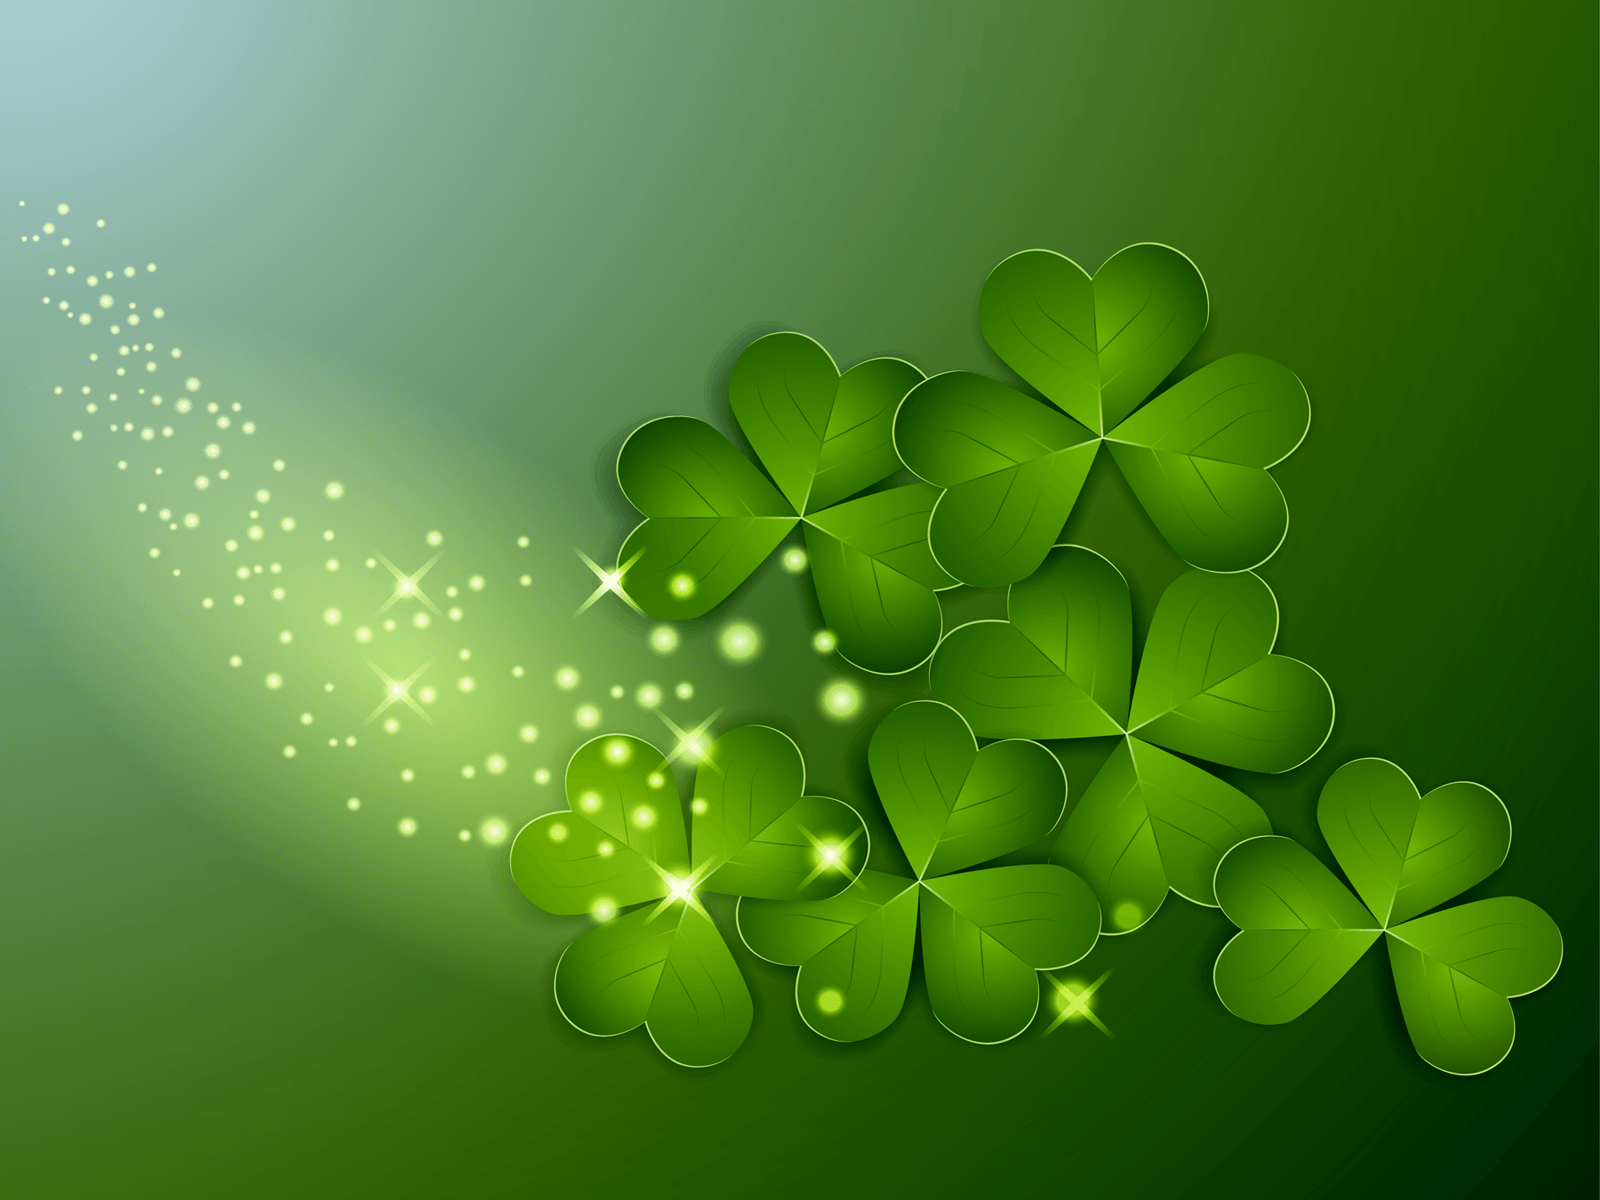 St Patrick Day Backgrounds - Wallpaper Cave